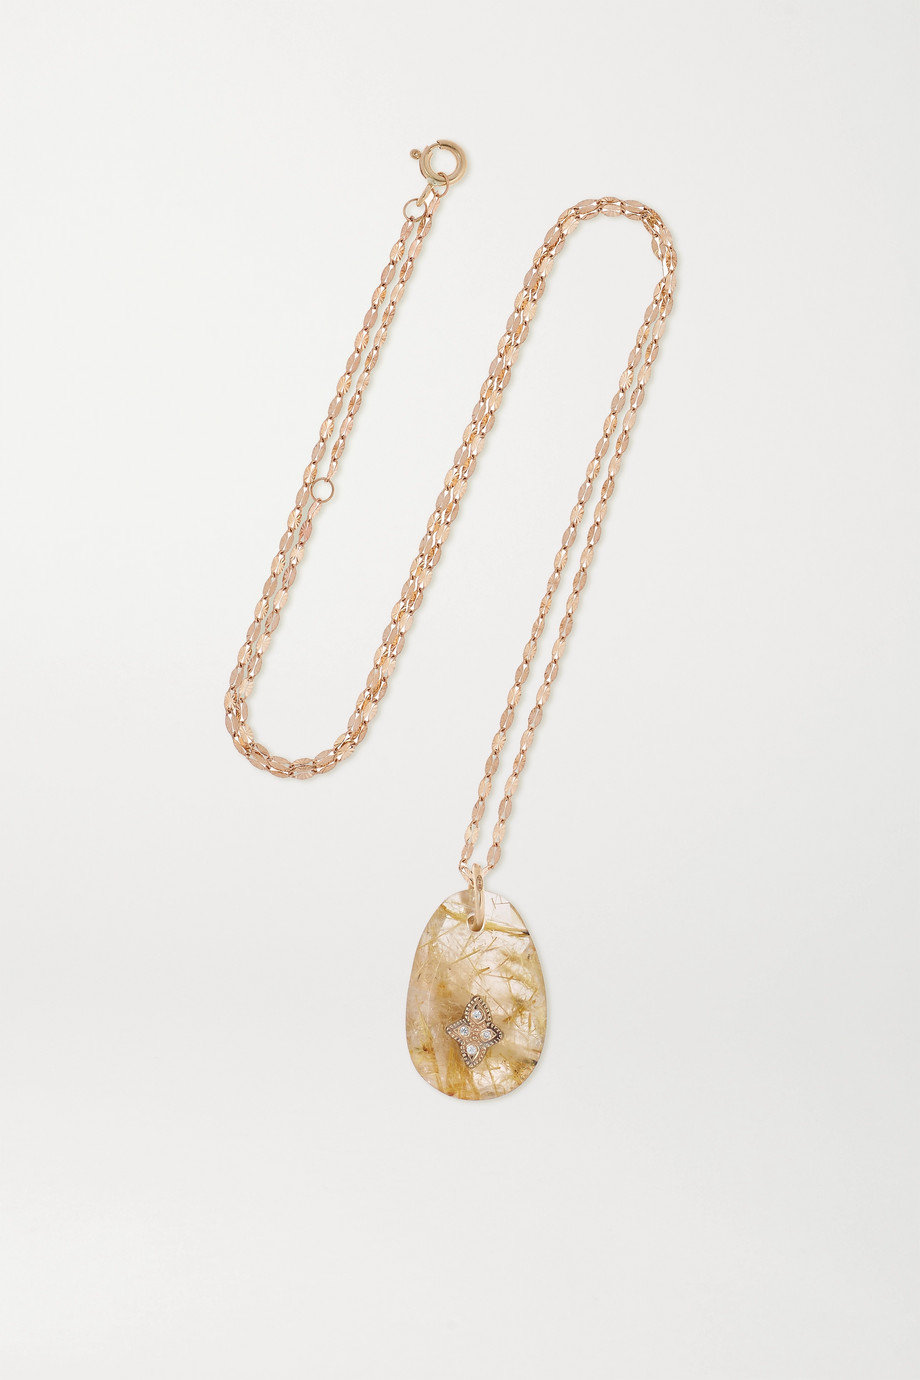 PASCALE MONVOISIN Gaia N°1 9 and 14-karat gold, quartz and diamond necklace